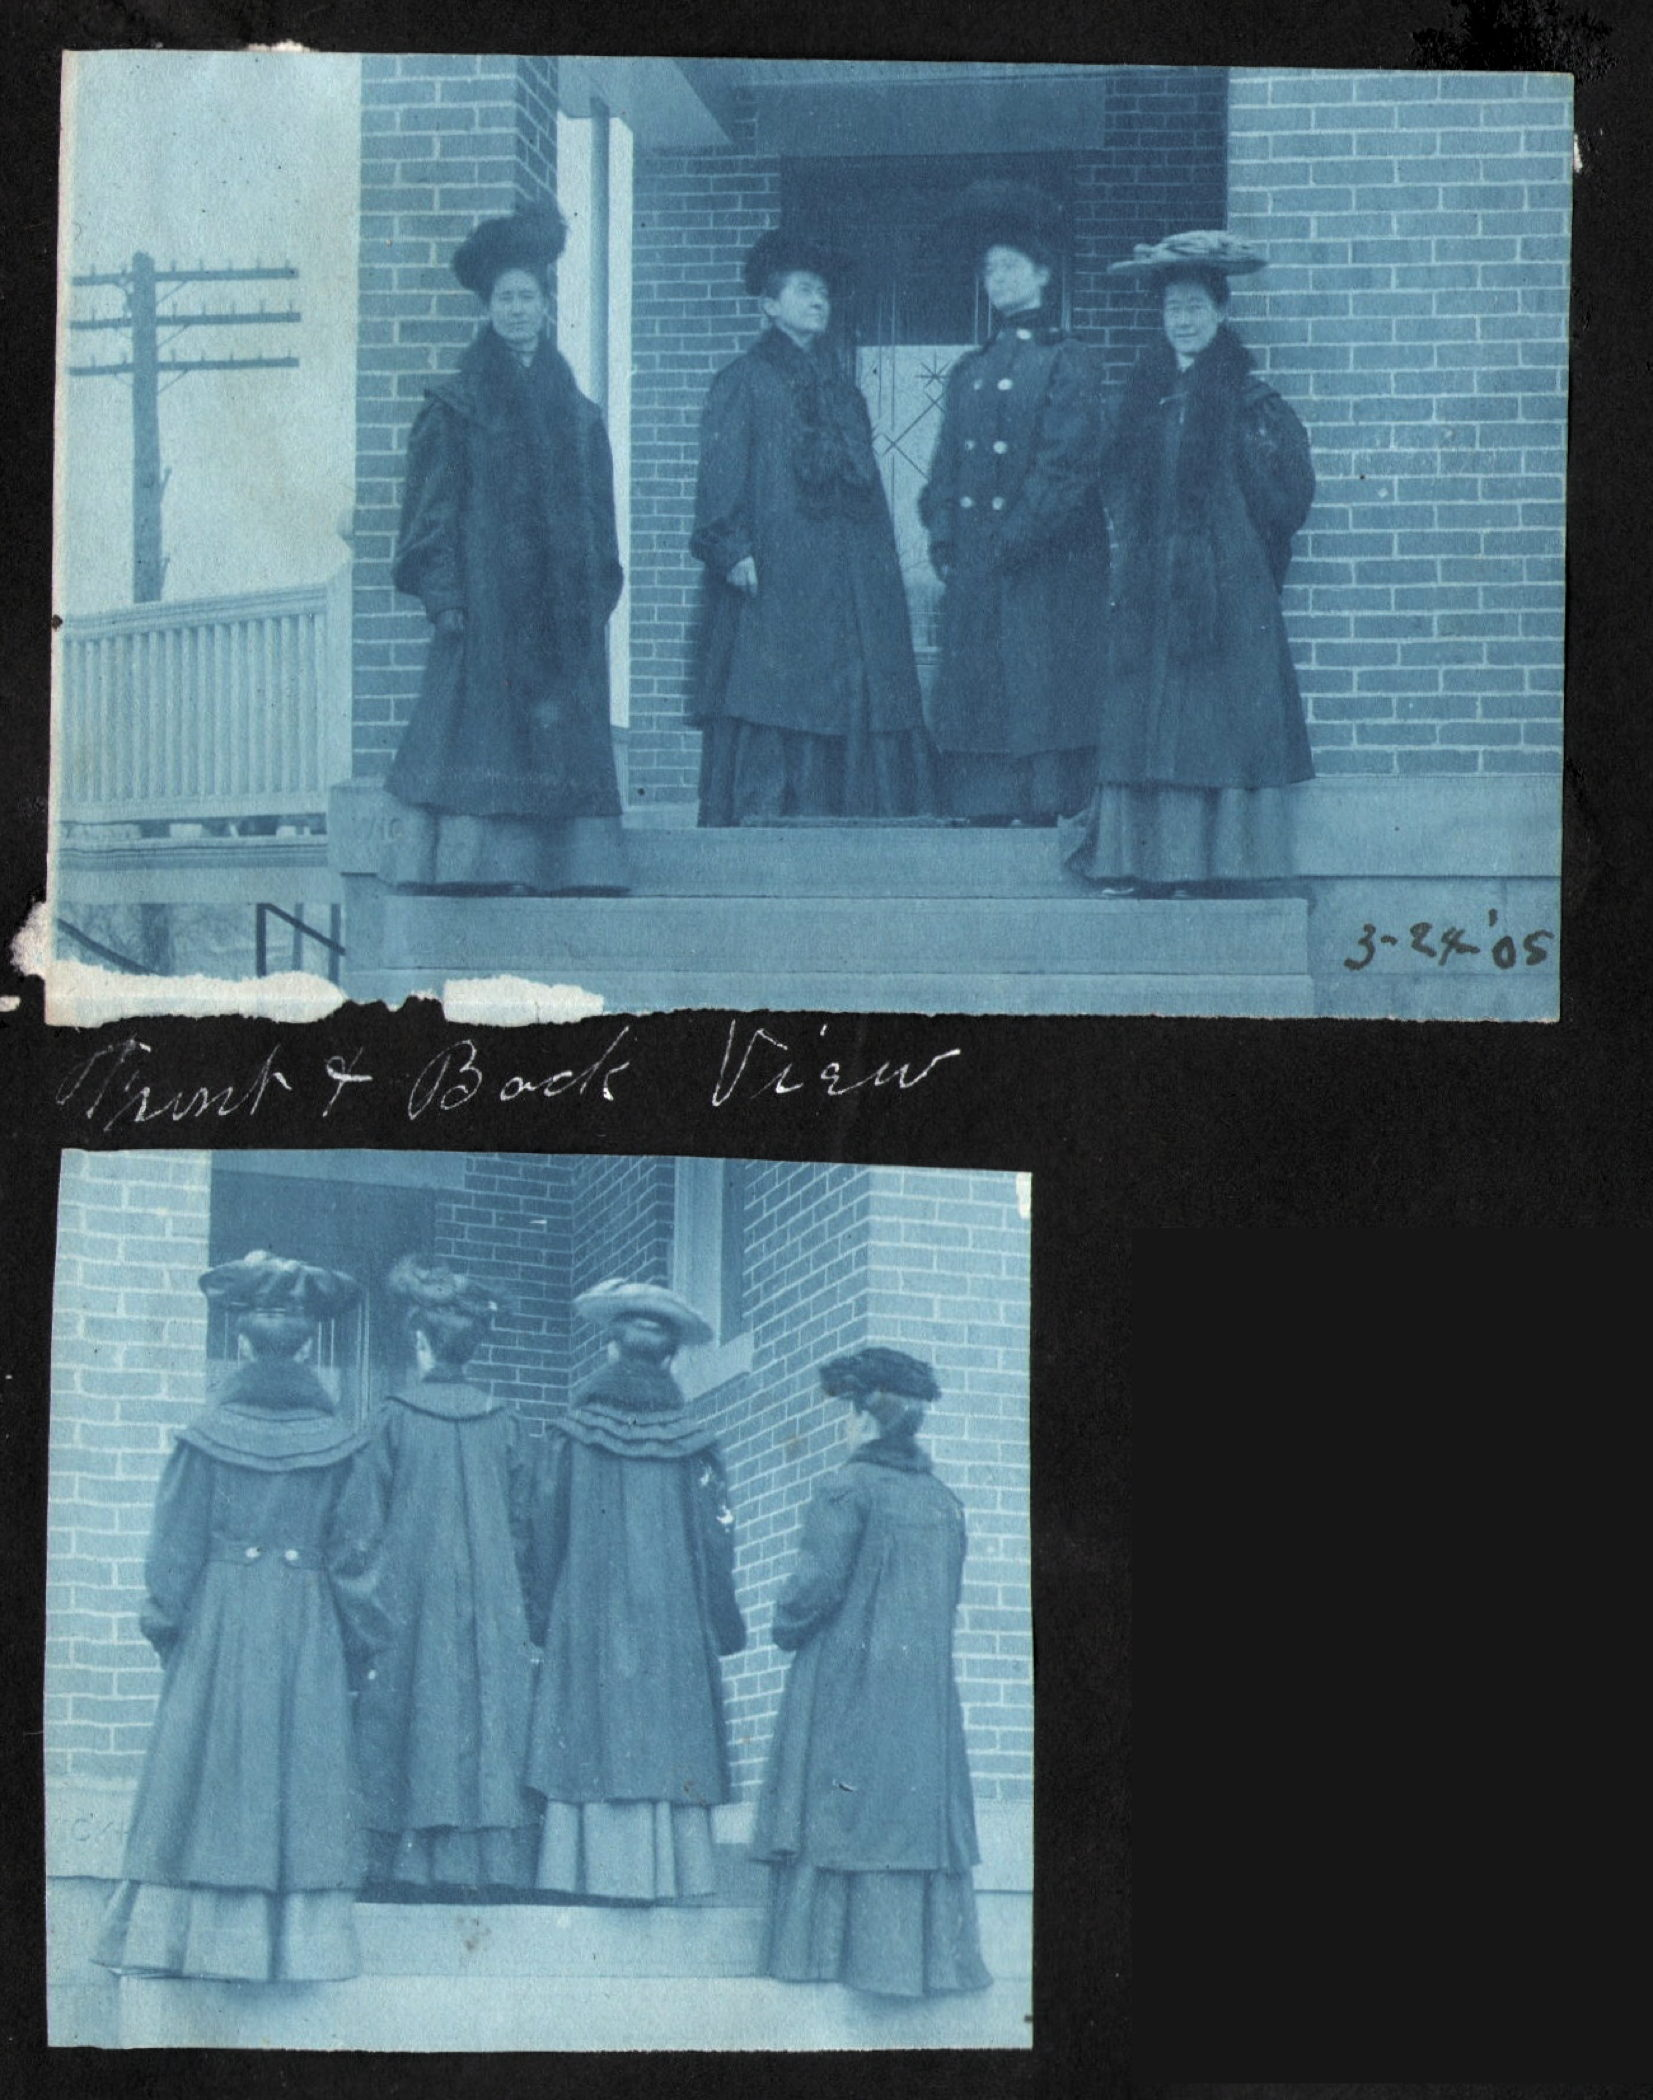 Front and back view of women in fancy coats and hats, 1905